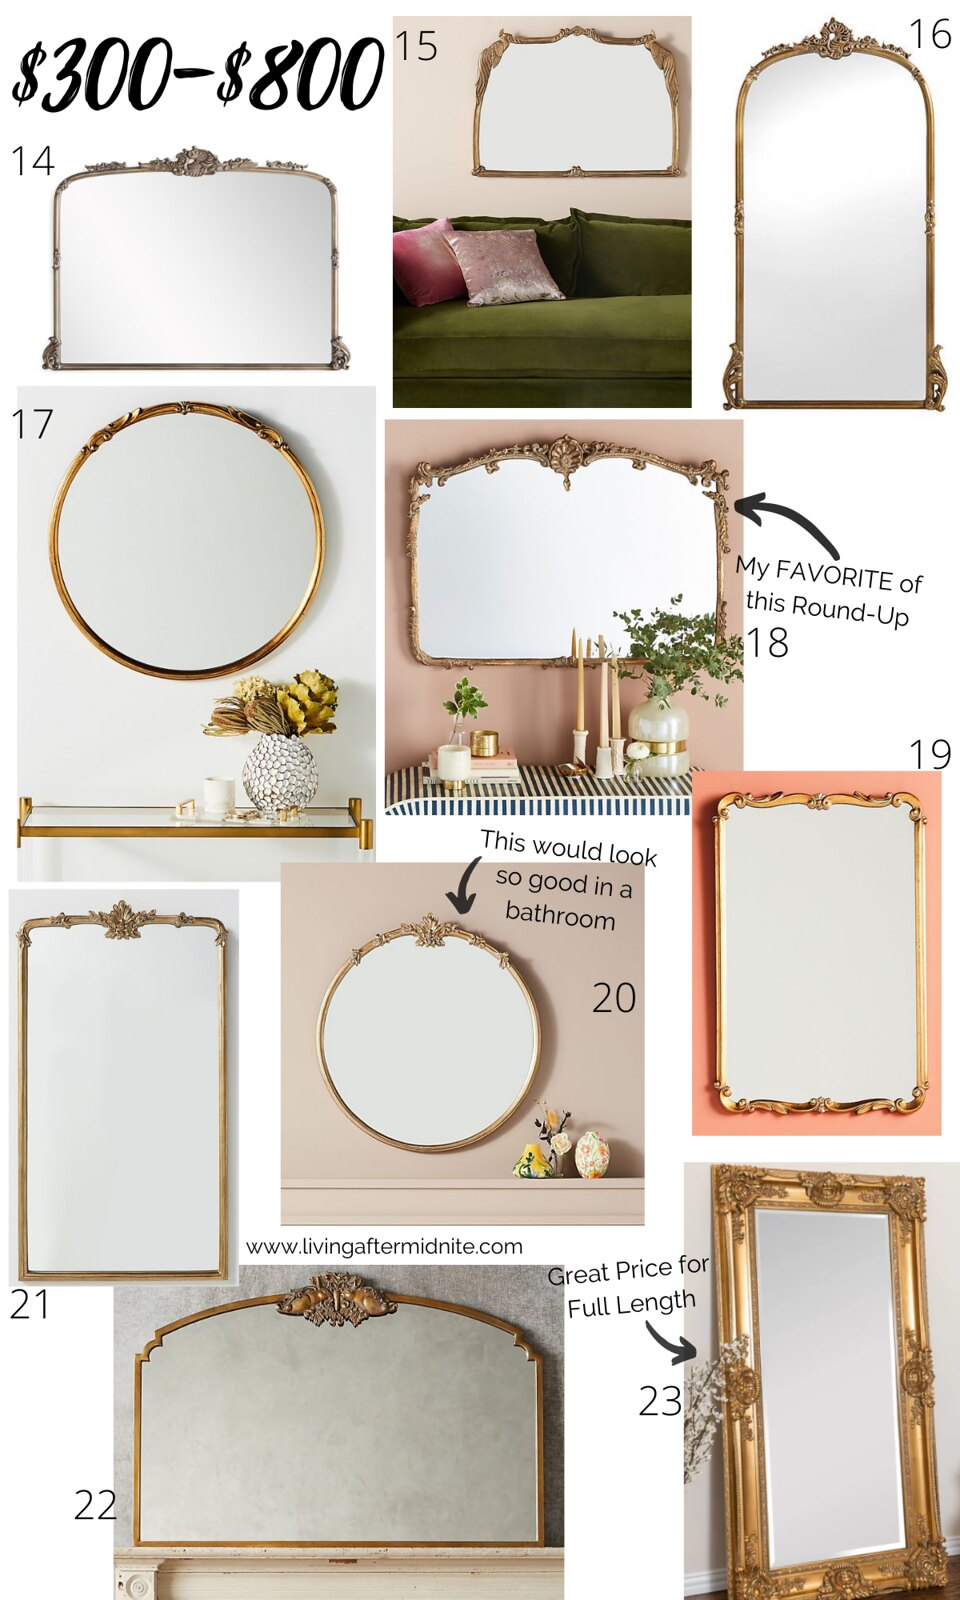 Currently Obsessed with Vintage Gold Mirrors | Antique Looking Mirrors from $300-800